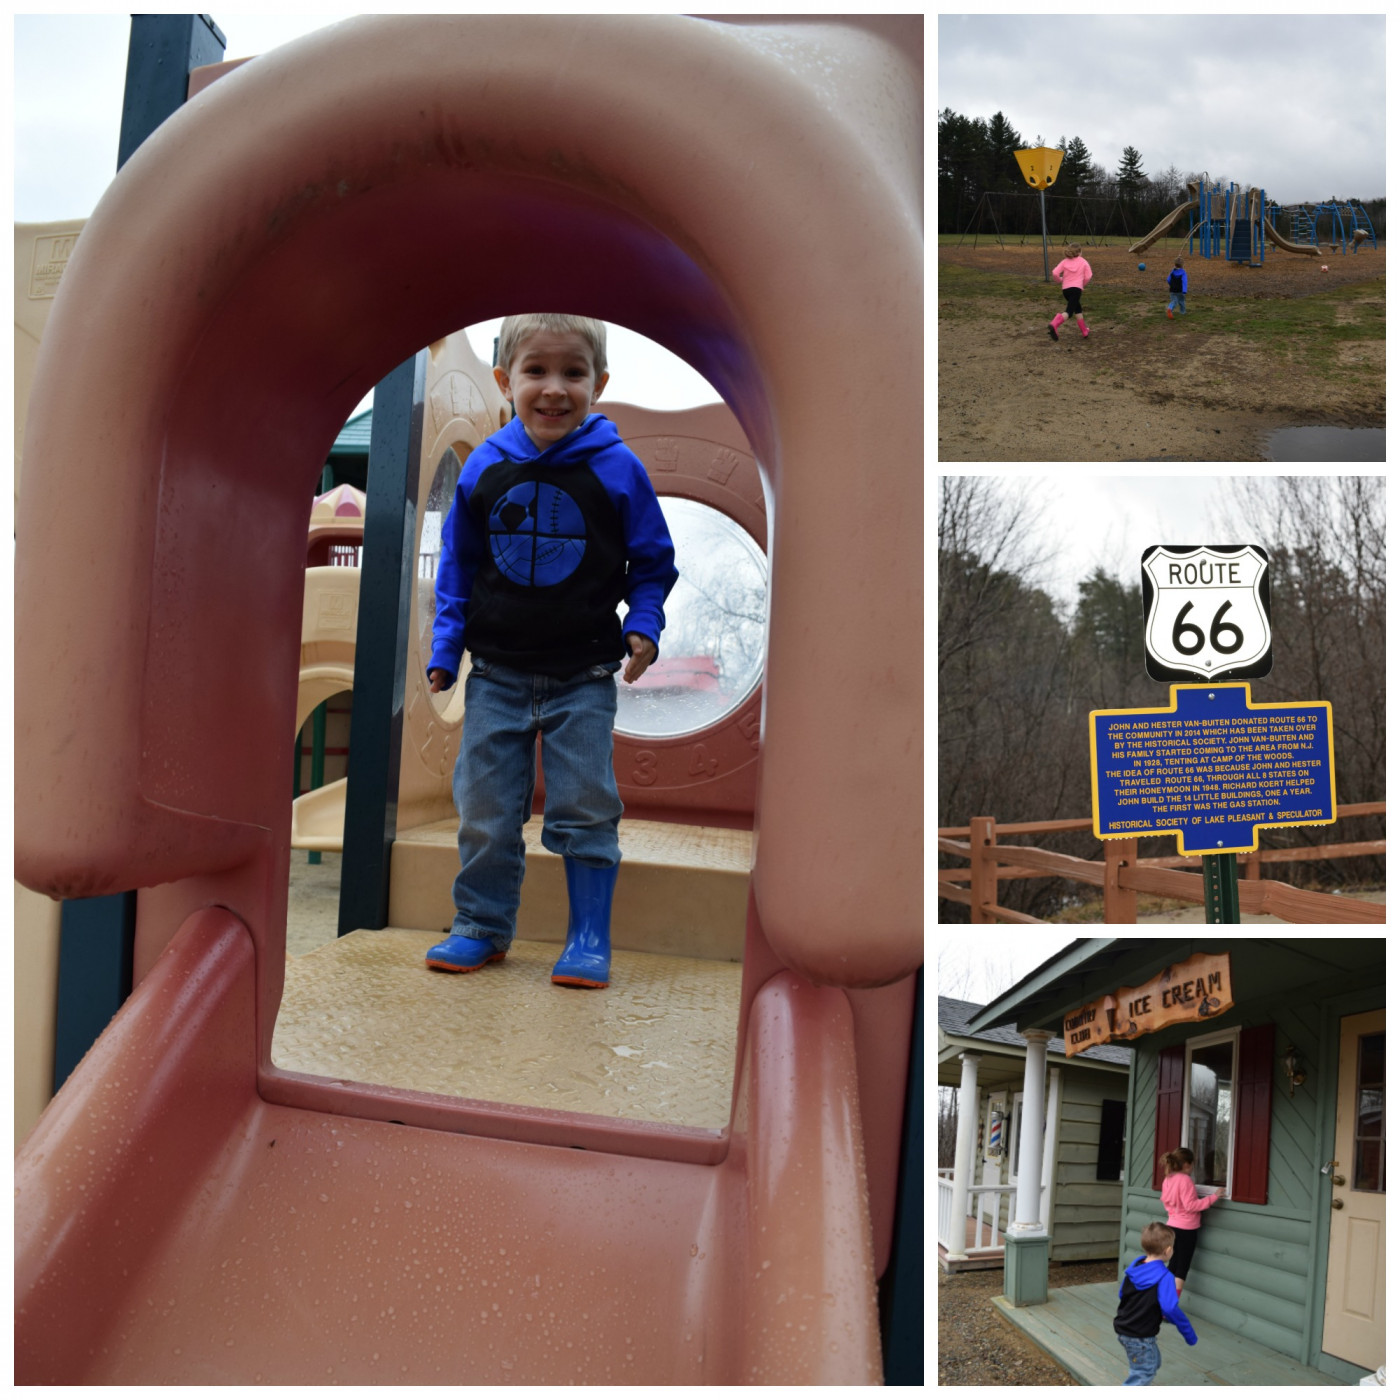 Kids at Speculator Playground